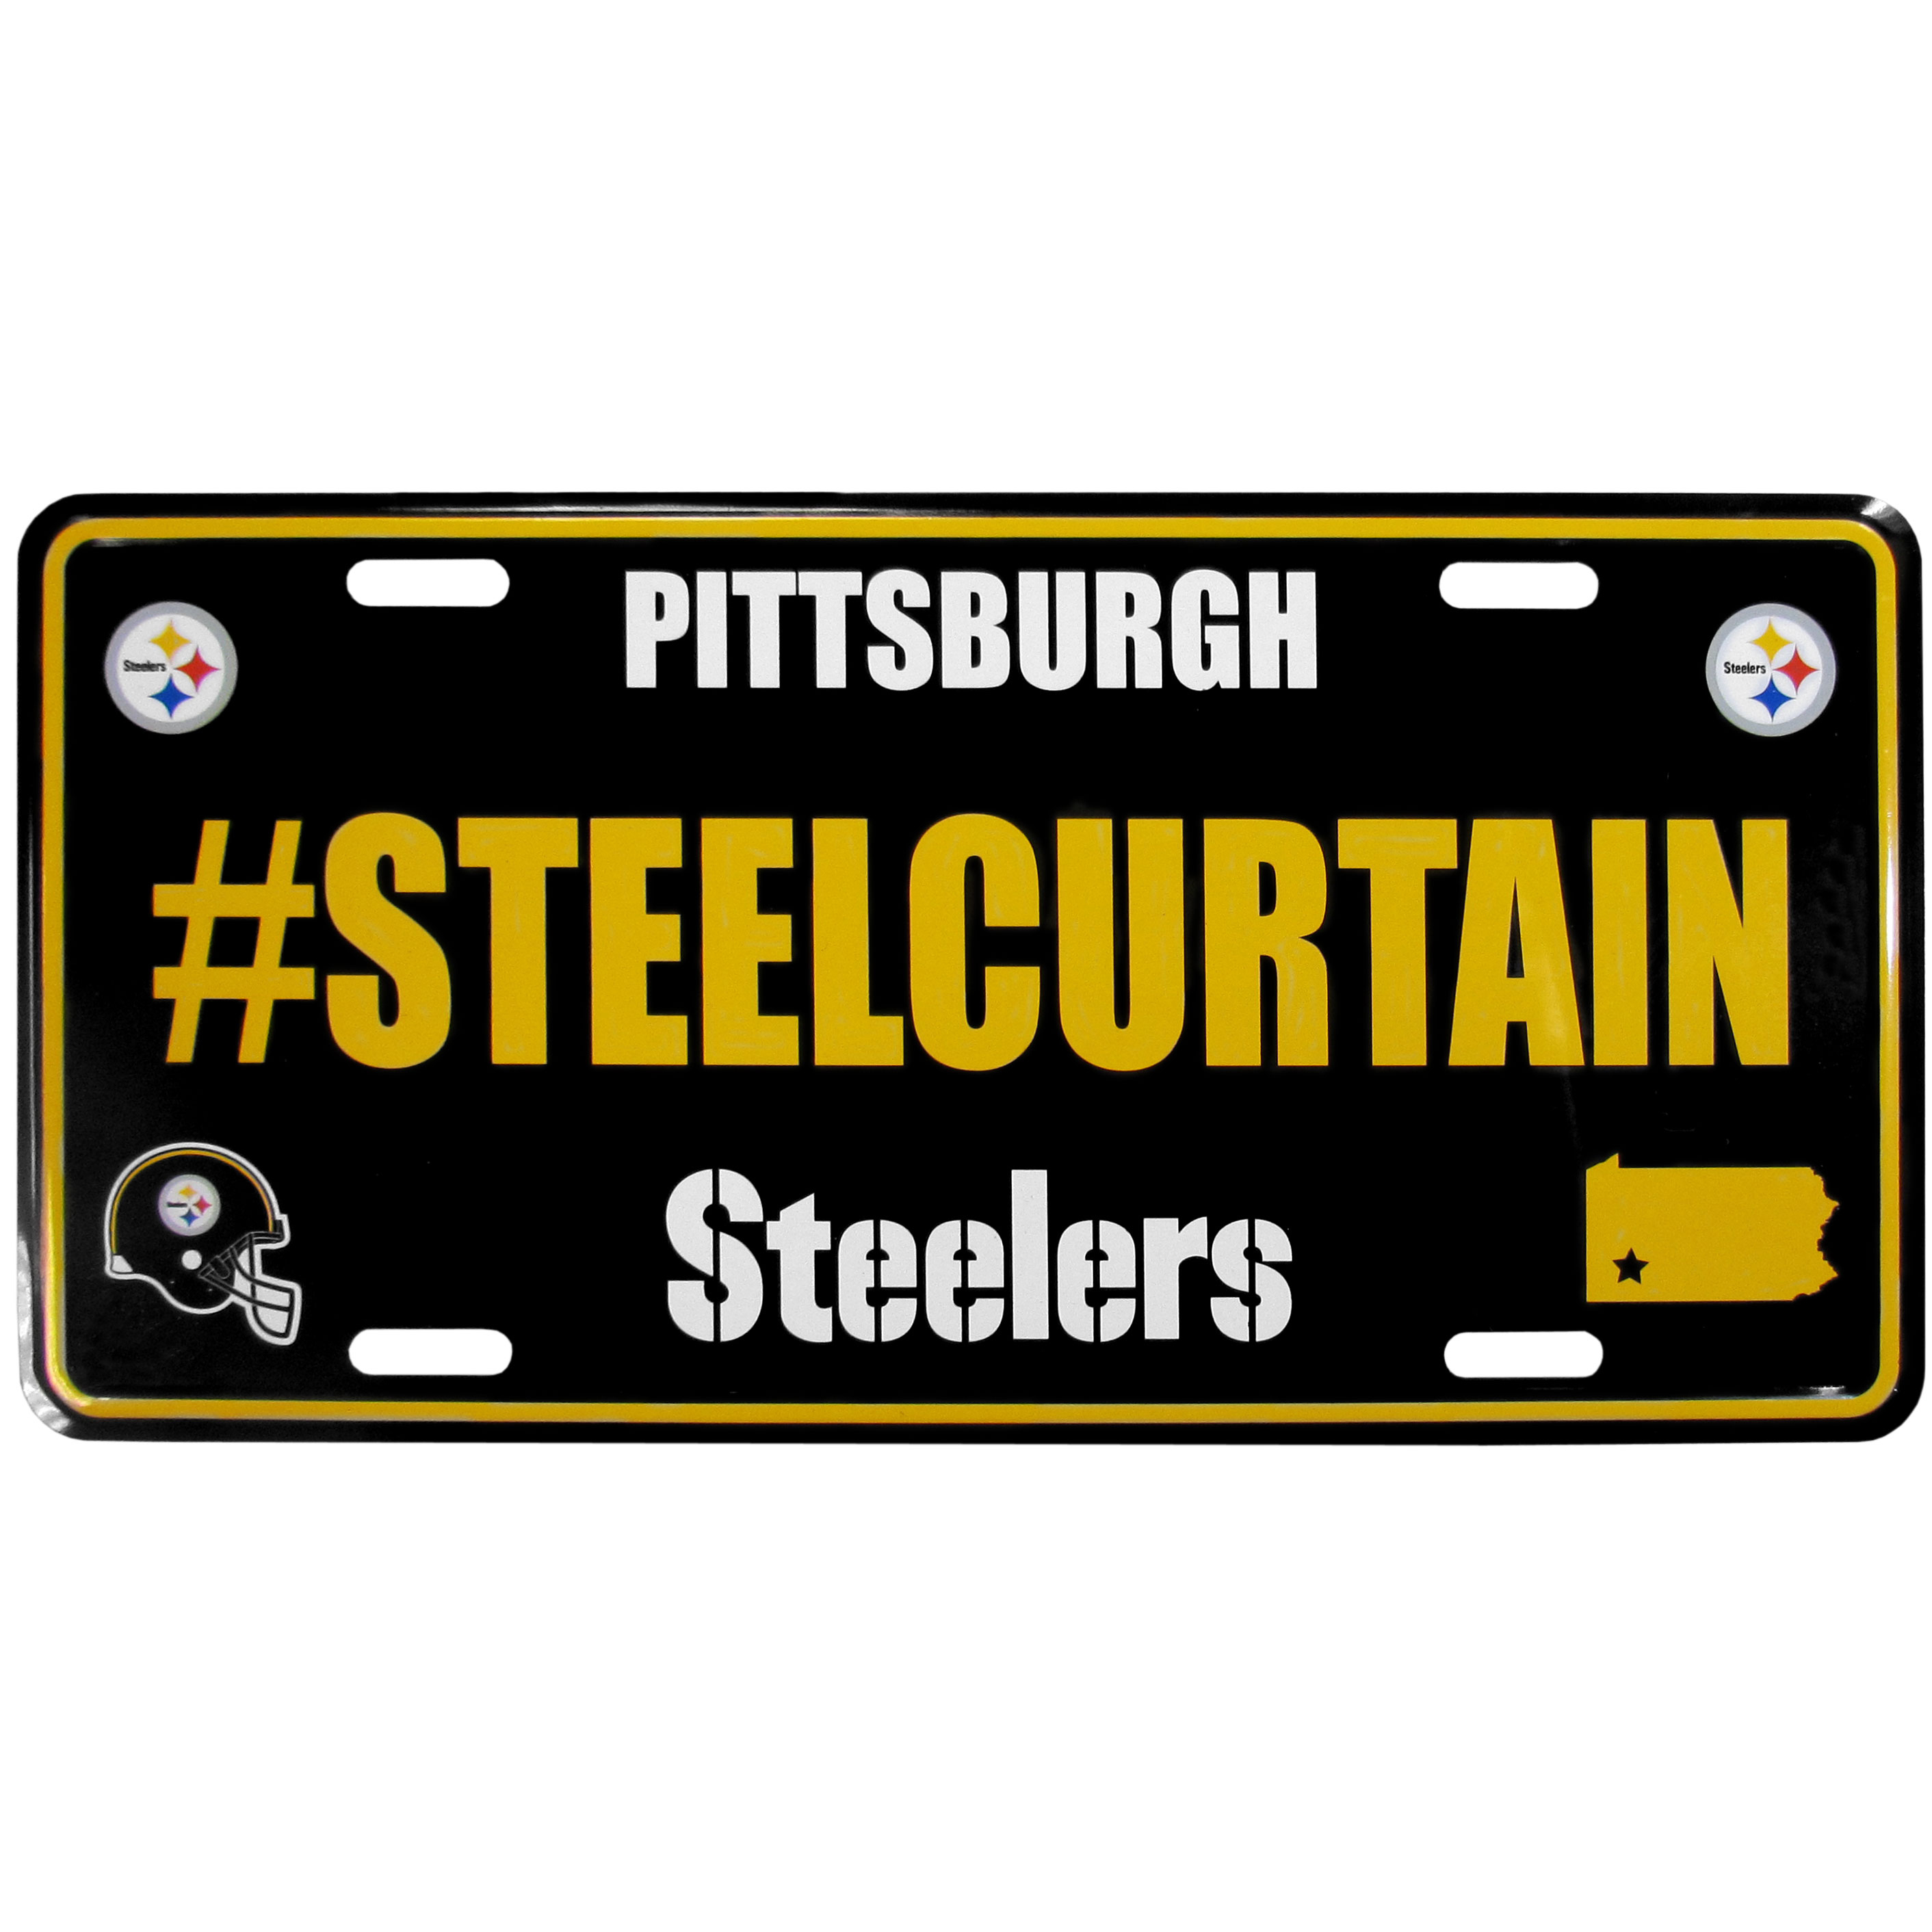 Pittsburgh Steelers Hashtag License Plate - It's a hashtag world! Celebrate the Pittsburgh Steelers with this stamped aluminum license plate with the most popular team hashtag! This bright license plate will look great on your vehicle or mounted in your fan cave.